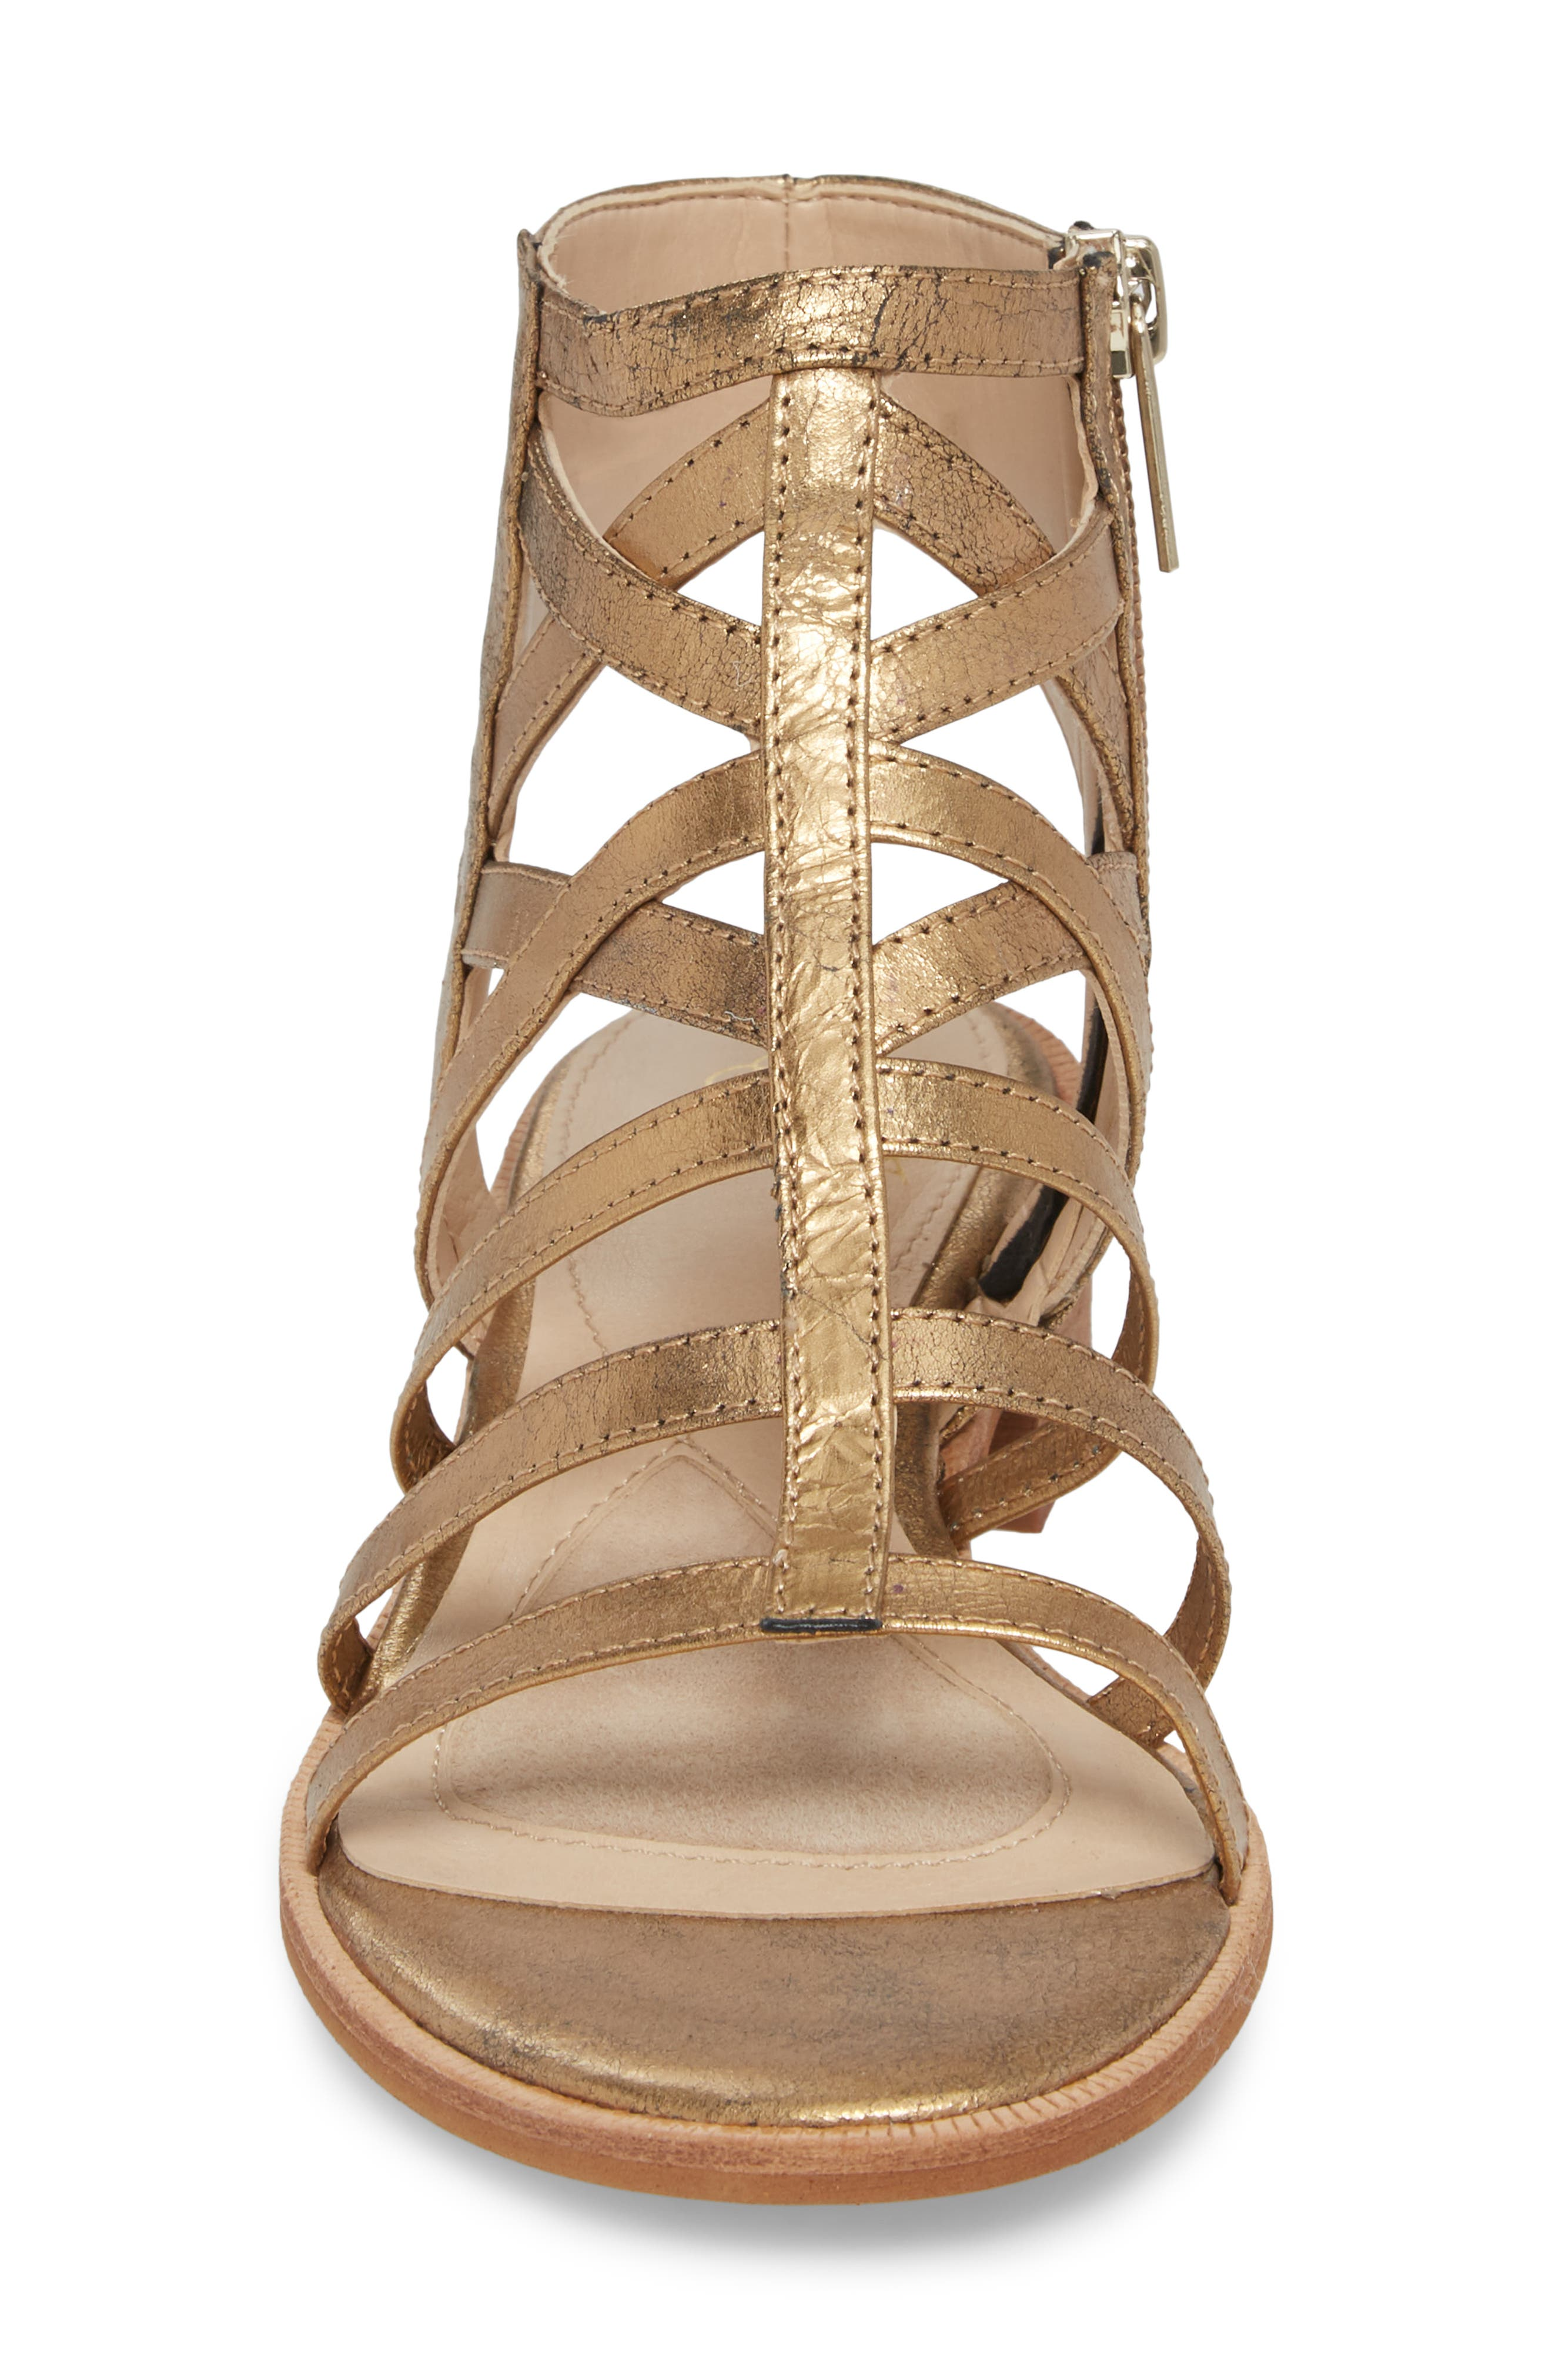 Genesis Cage Sandal,                             Alternate thumbnail 4, color,                             Old Gold Leather